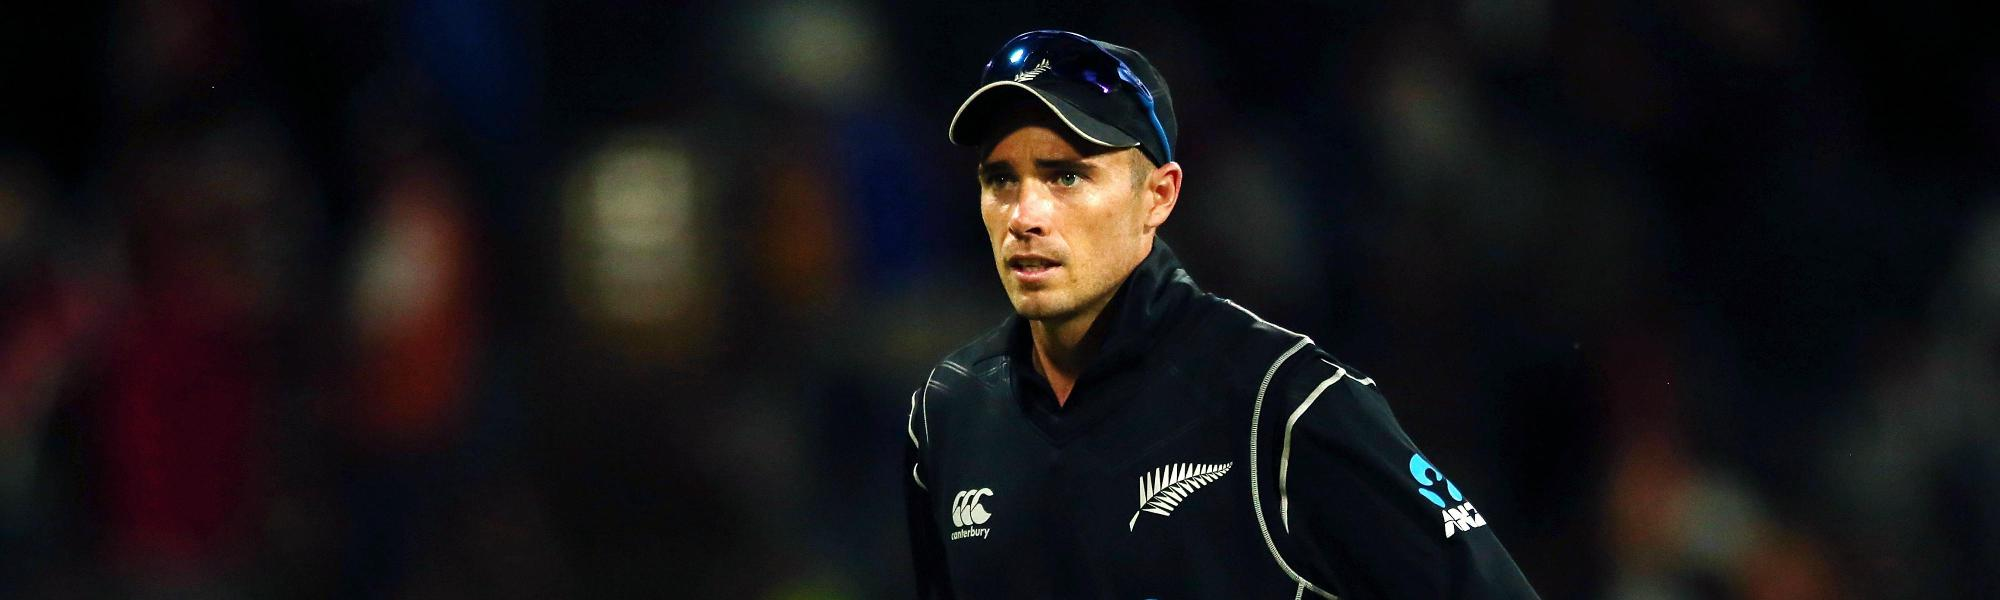 Tim Southee was disappointed by New Zealand's performance, but was confident one loss will not dent their confidence